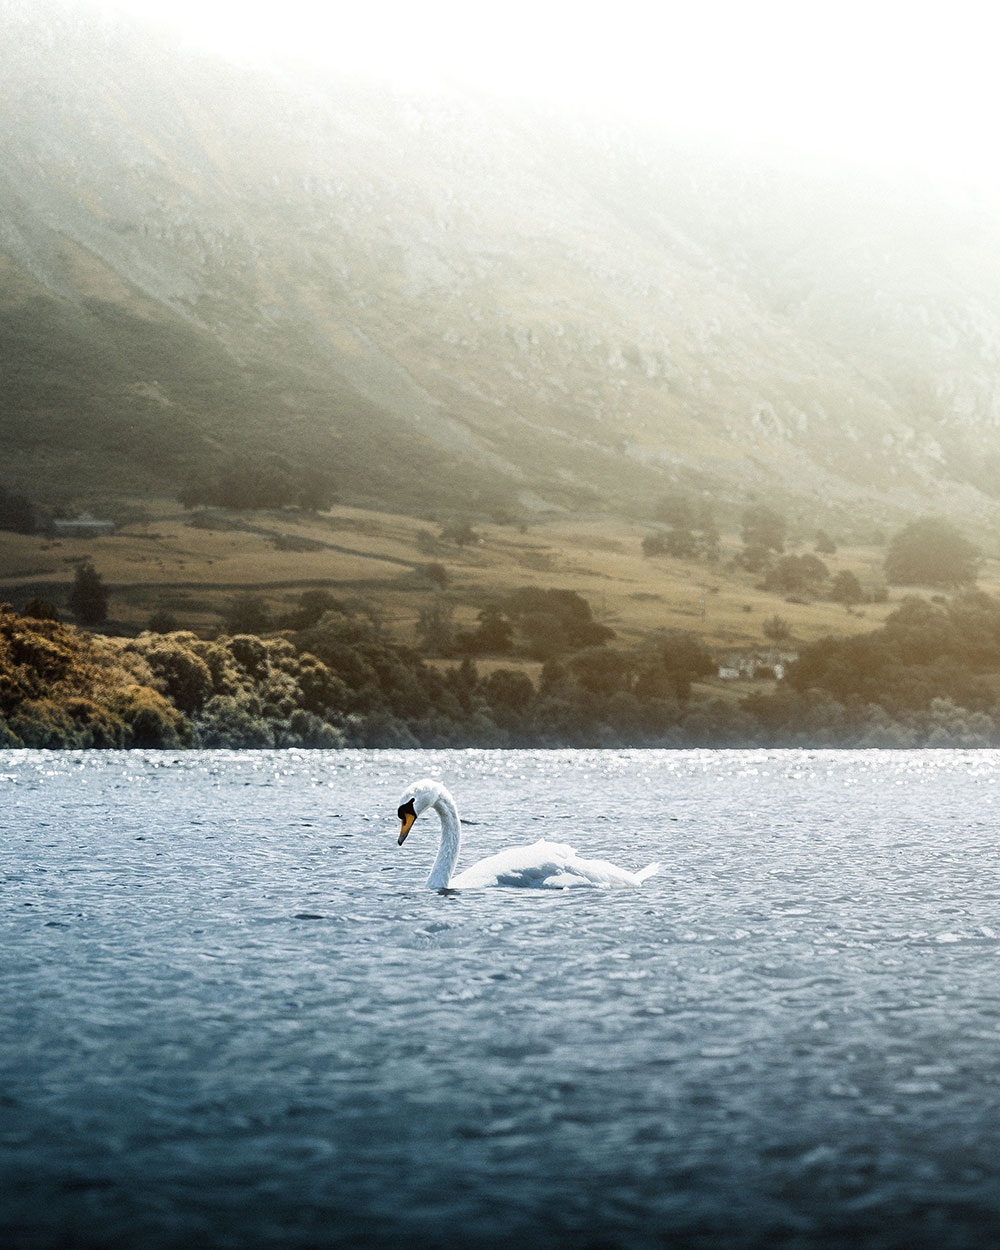 A swan glides on the waters of Ullswater